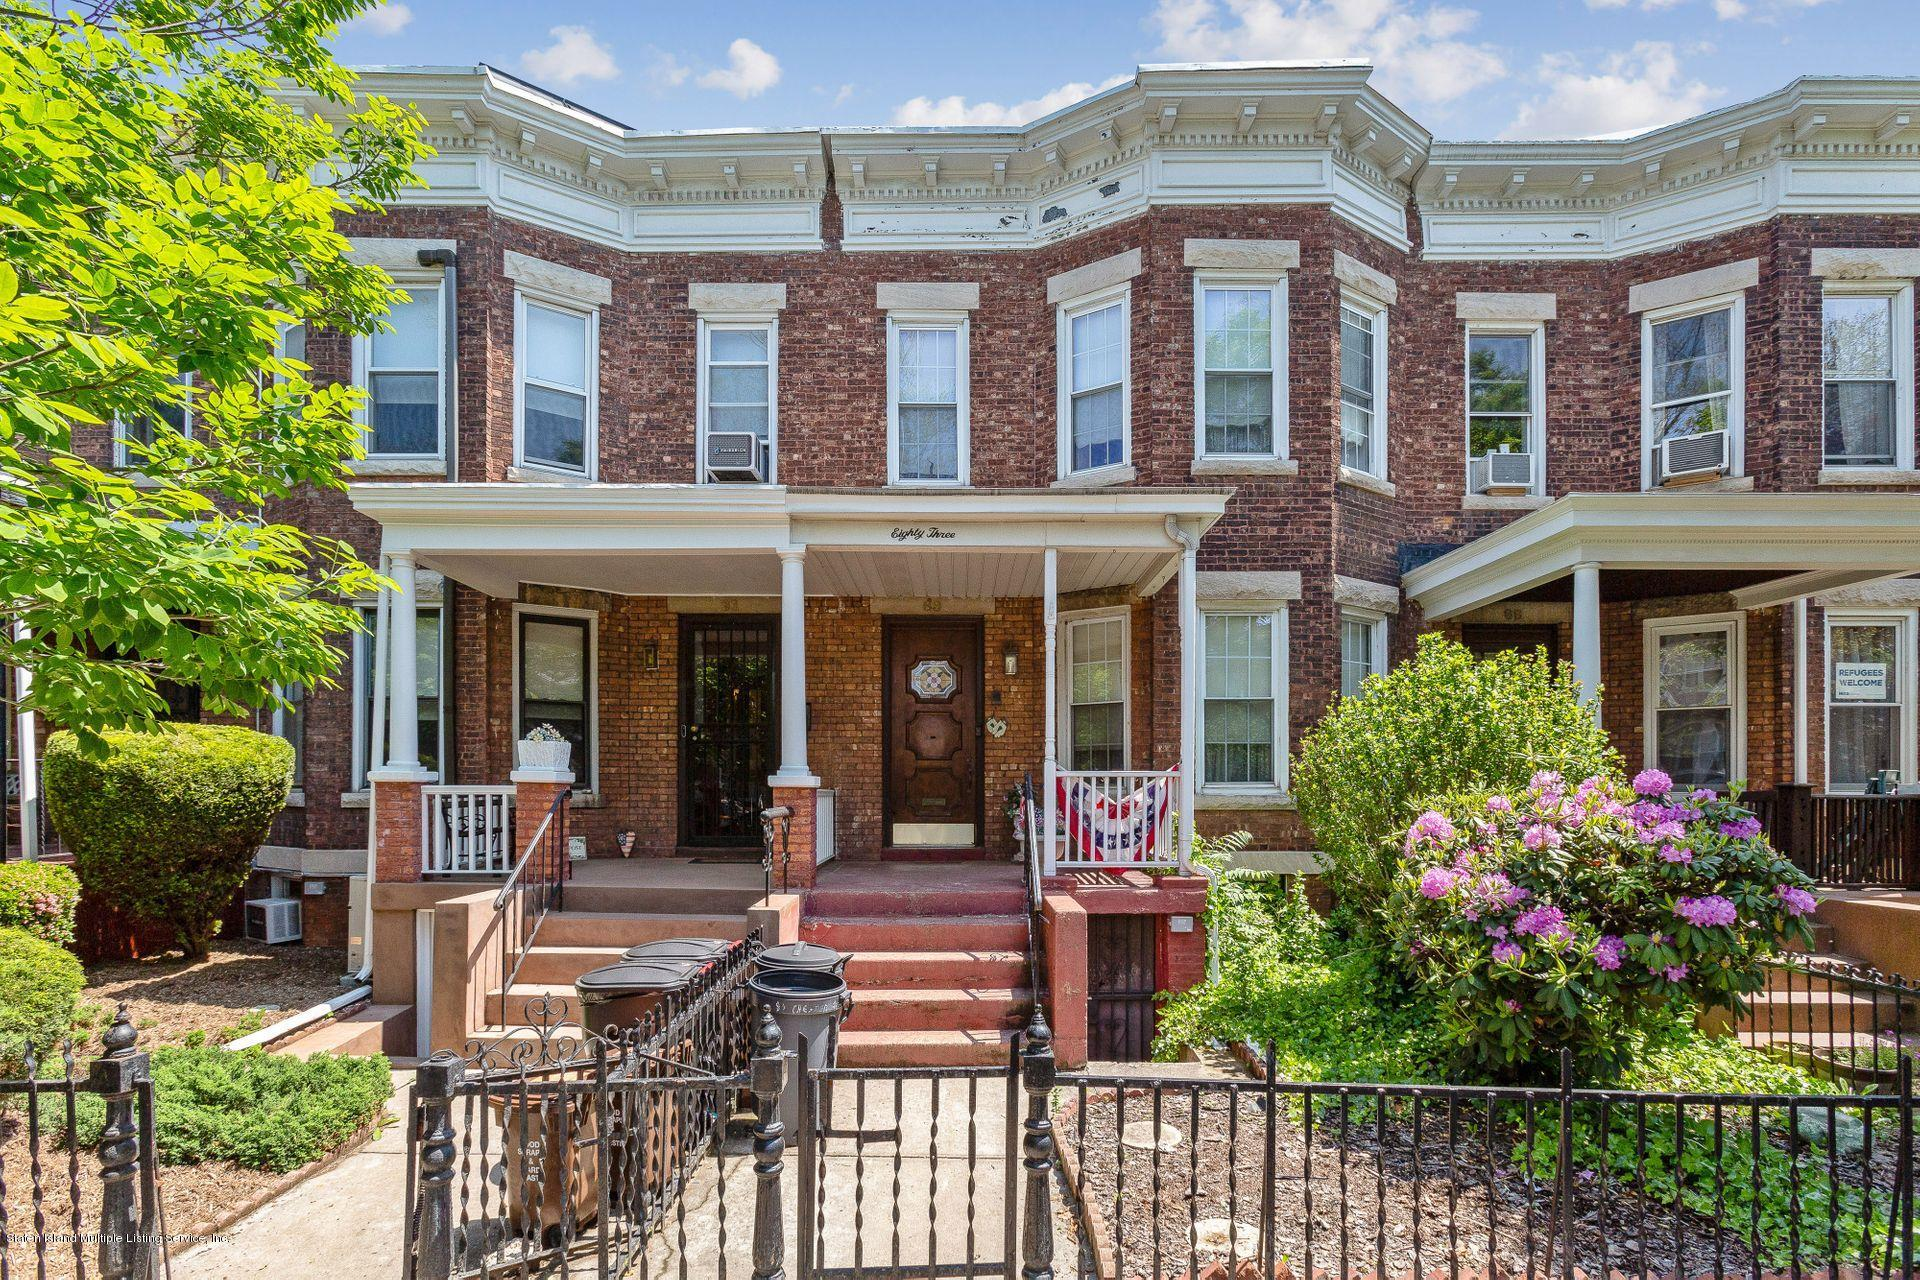 Single Family - Attached in Kensington - 83 Chester Avenue  Brooklyn, NY 11218